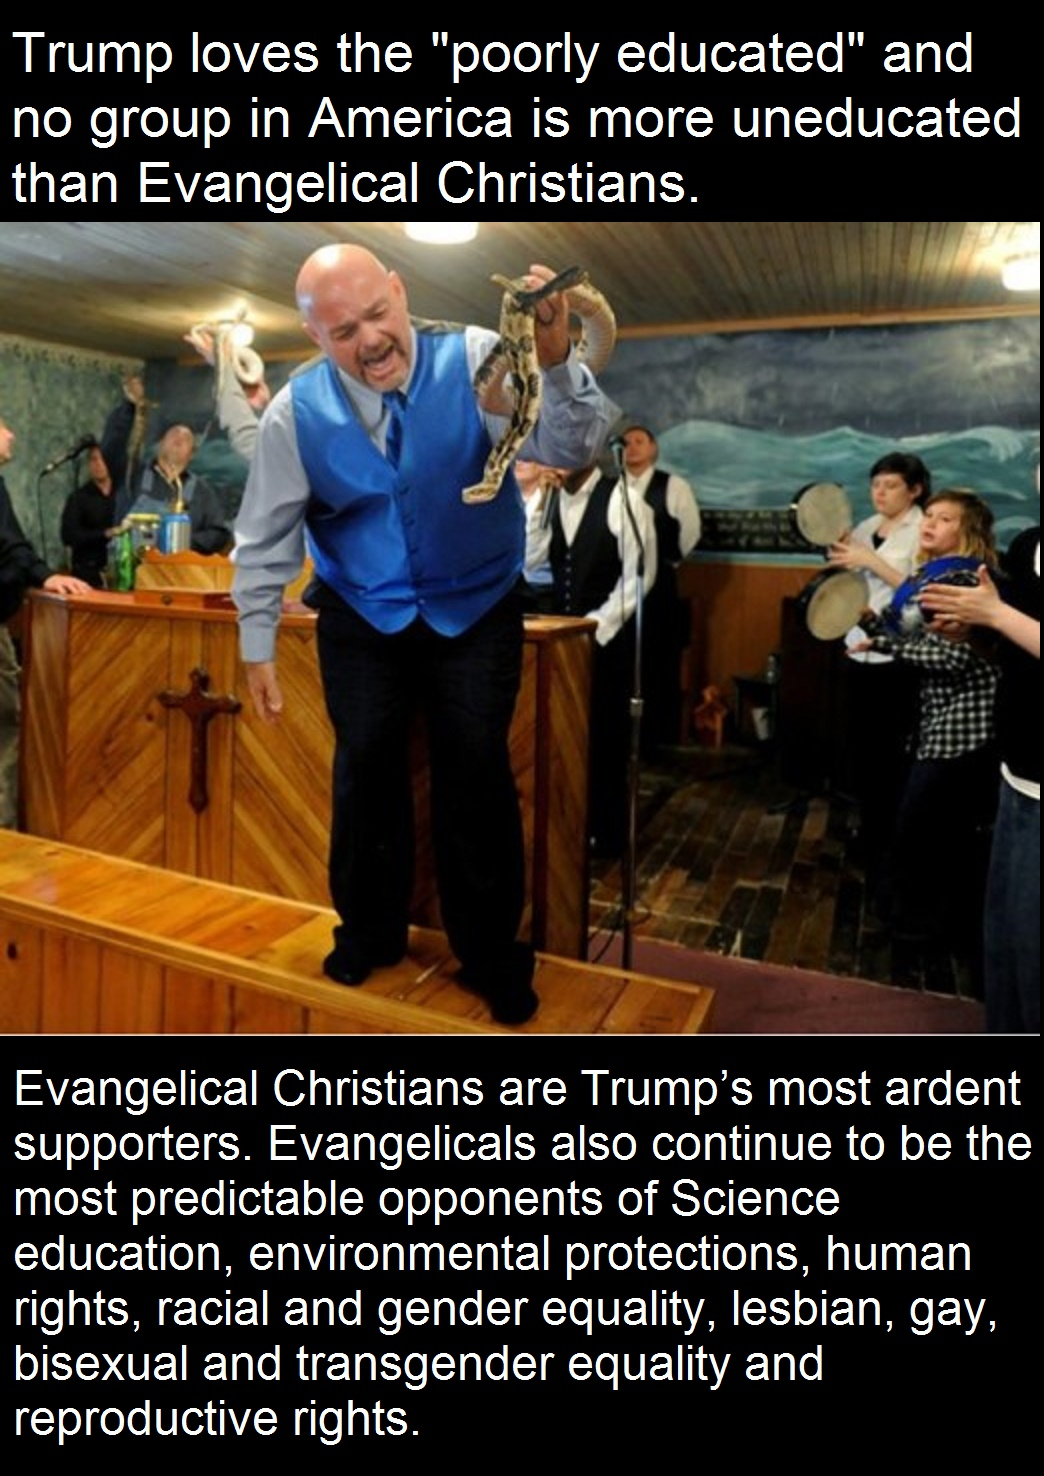 Evangelical Christians are Trump's most ardent supporters. Evangelicals also continue to be the most predictable opponents of Science education, environmental protections, human rights, racial and gender equality, lesbian, gay, bisexual and transgender equality and reproductive rights.